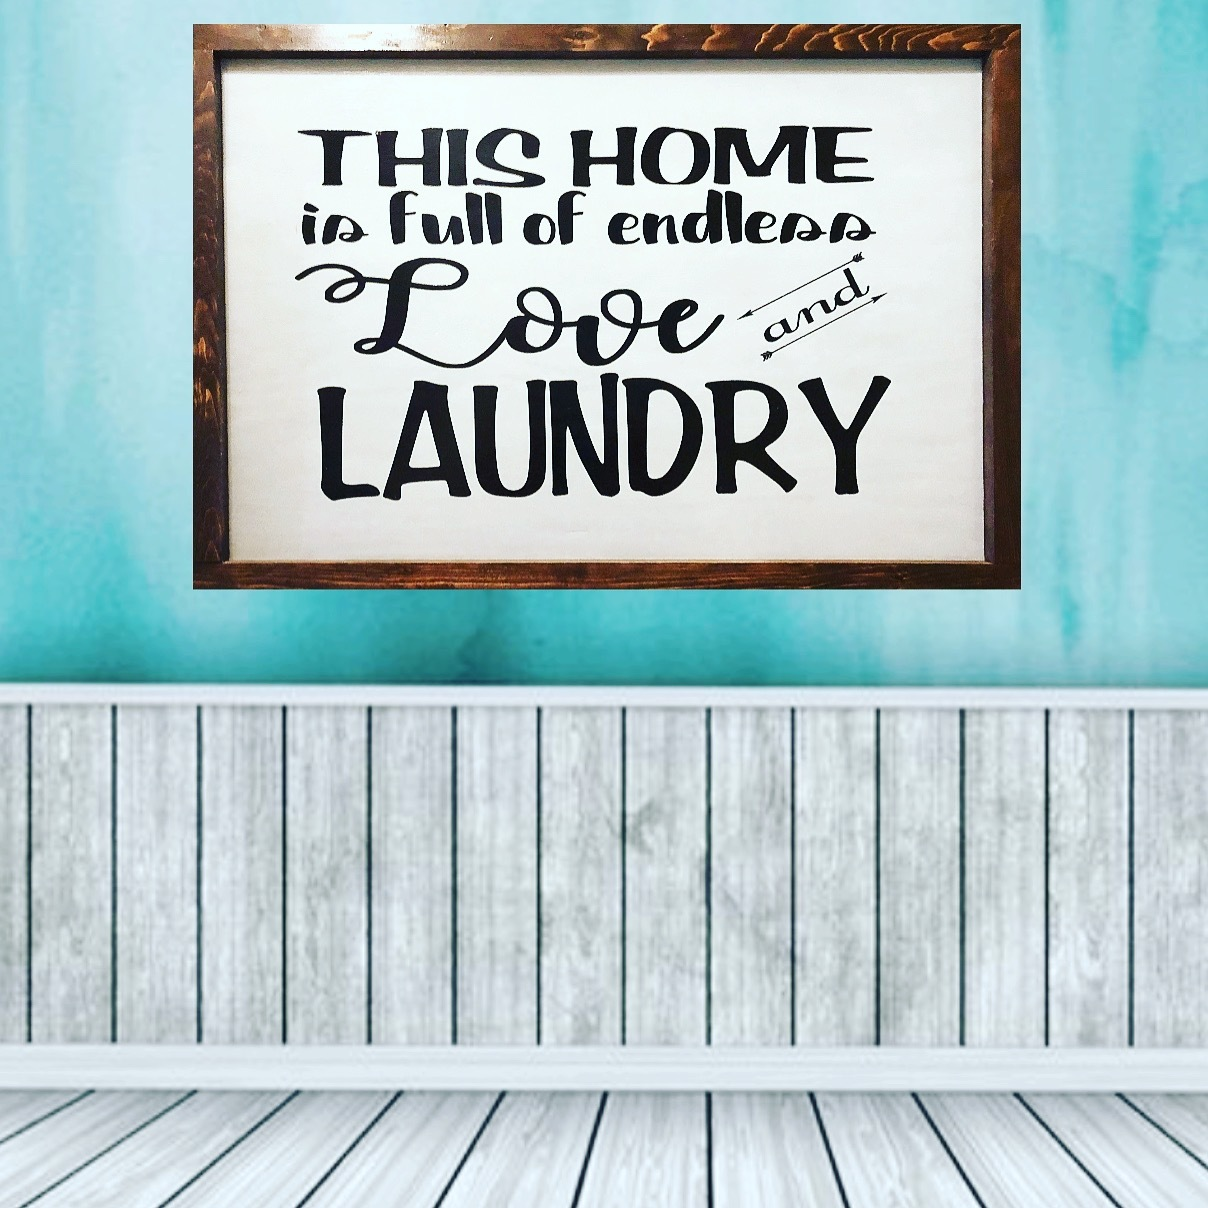 The Home Is Full Of Endless Love and Laundry Farmhouse Wood Sign